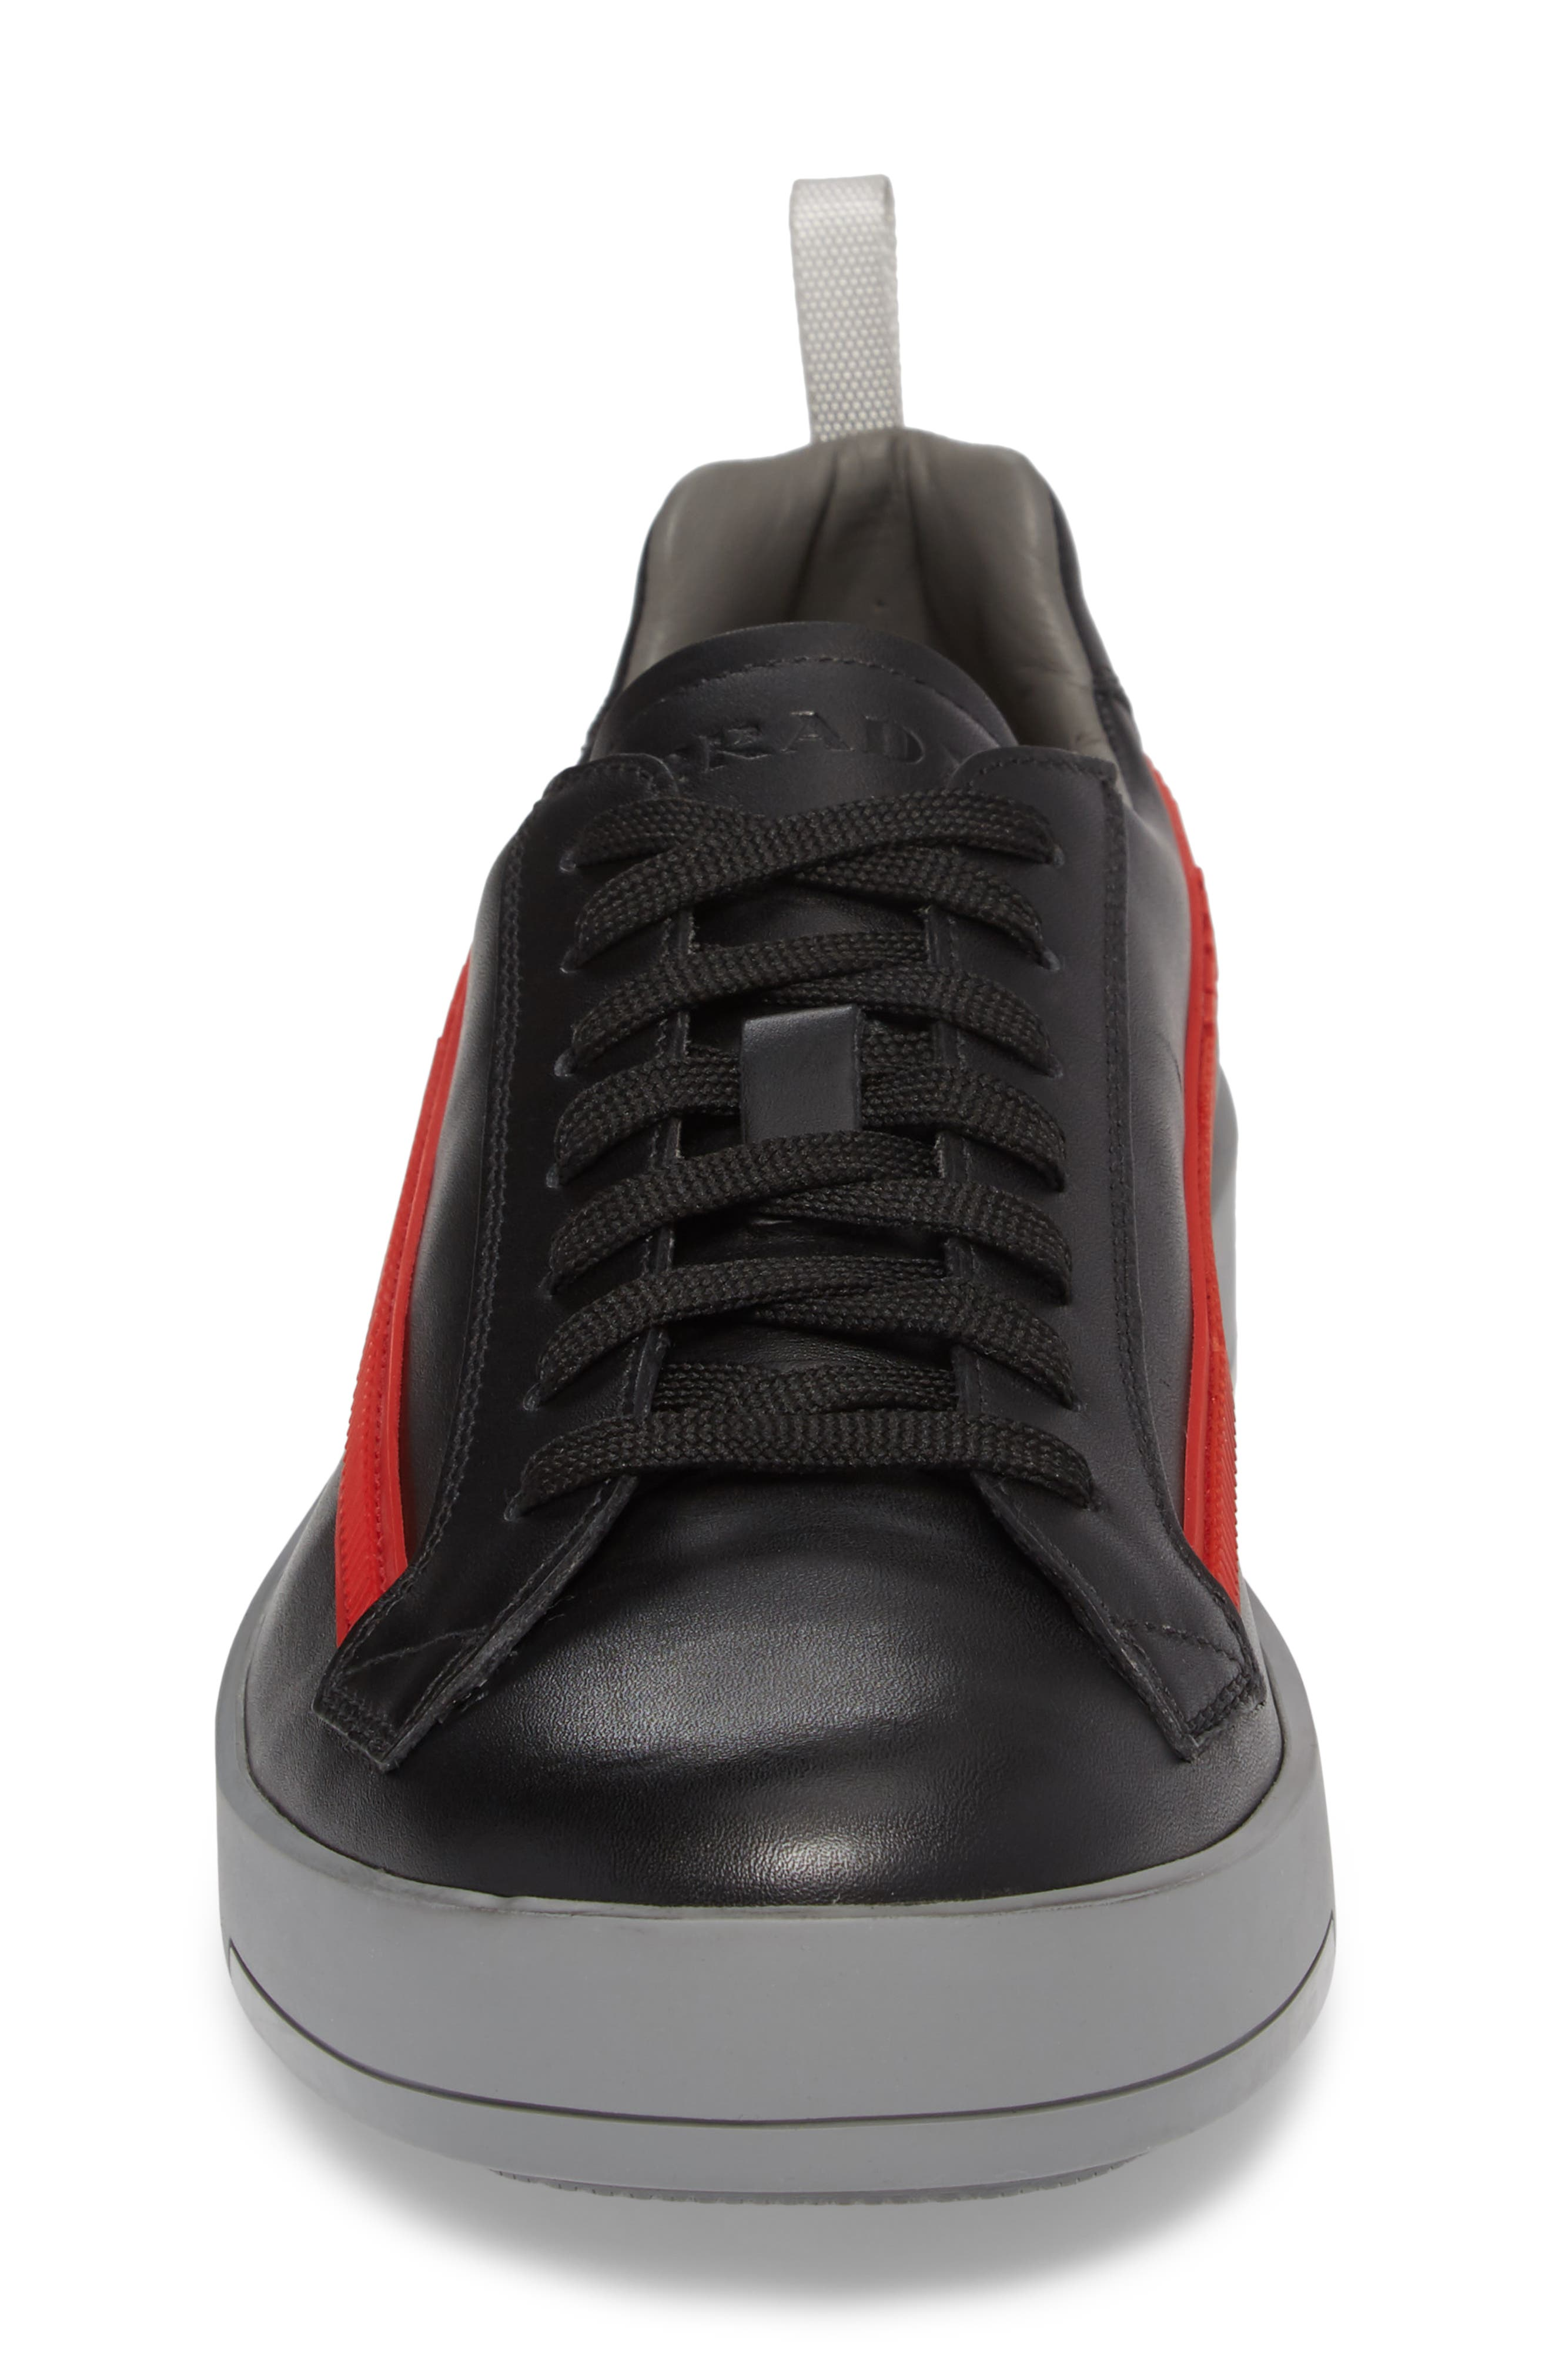 Linea Rossa Sneaker,                             Alternate thumbnail 4, color,                             Nero Bianco